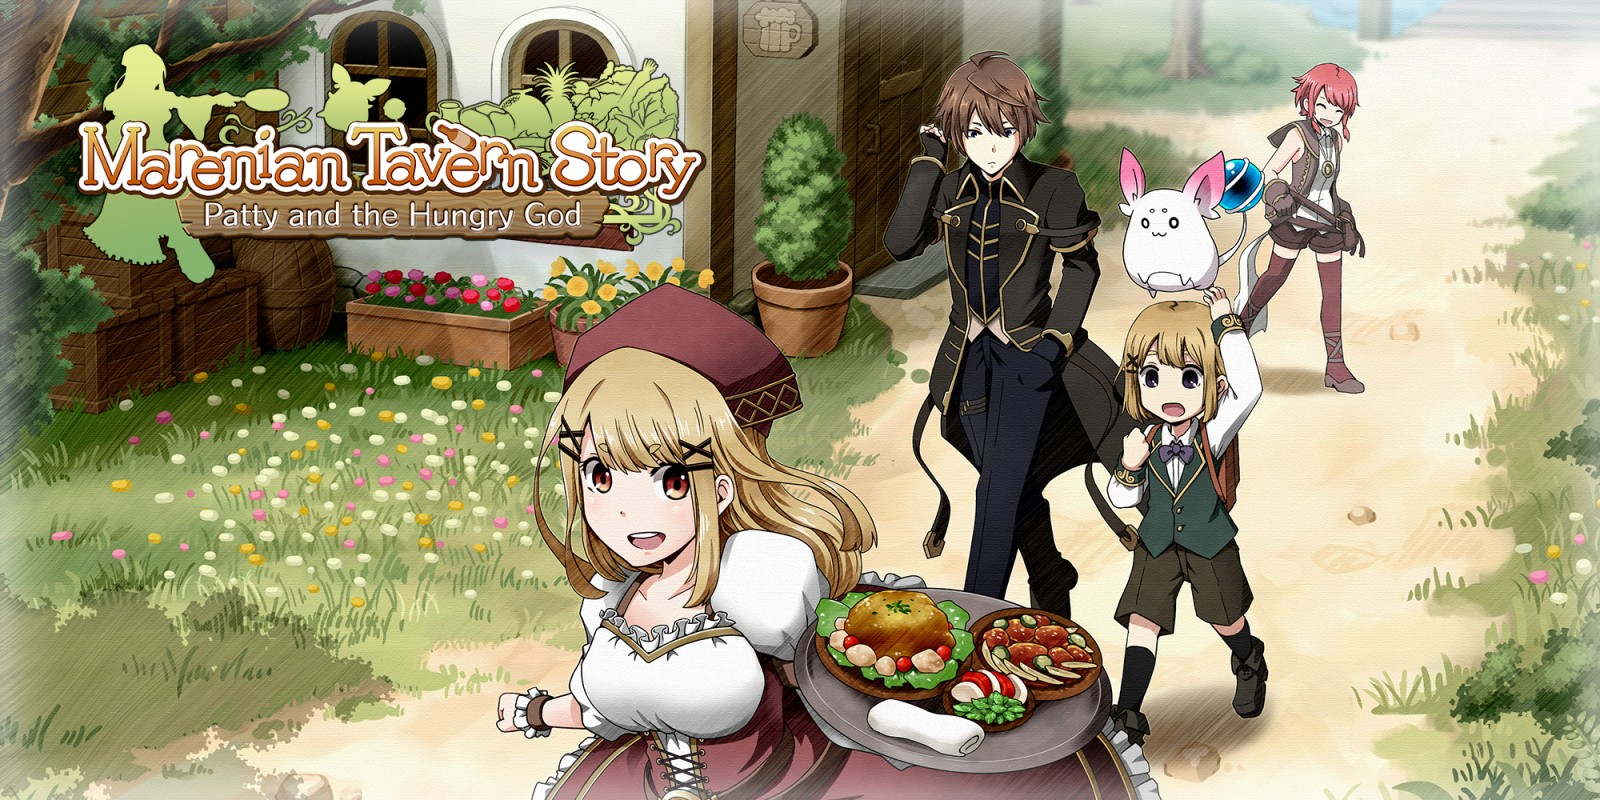 Marenian Tavern Story: Patty and the Hungry God